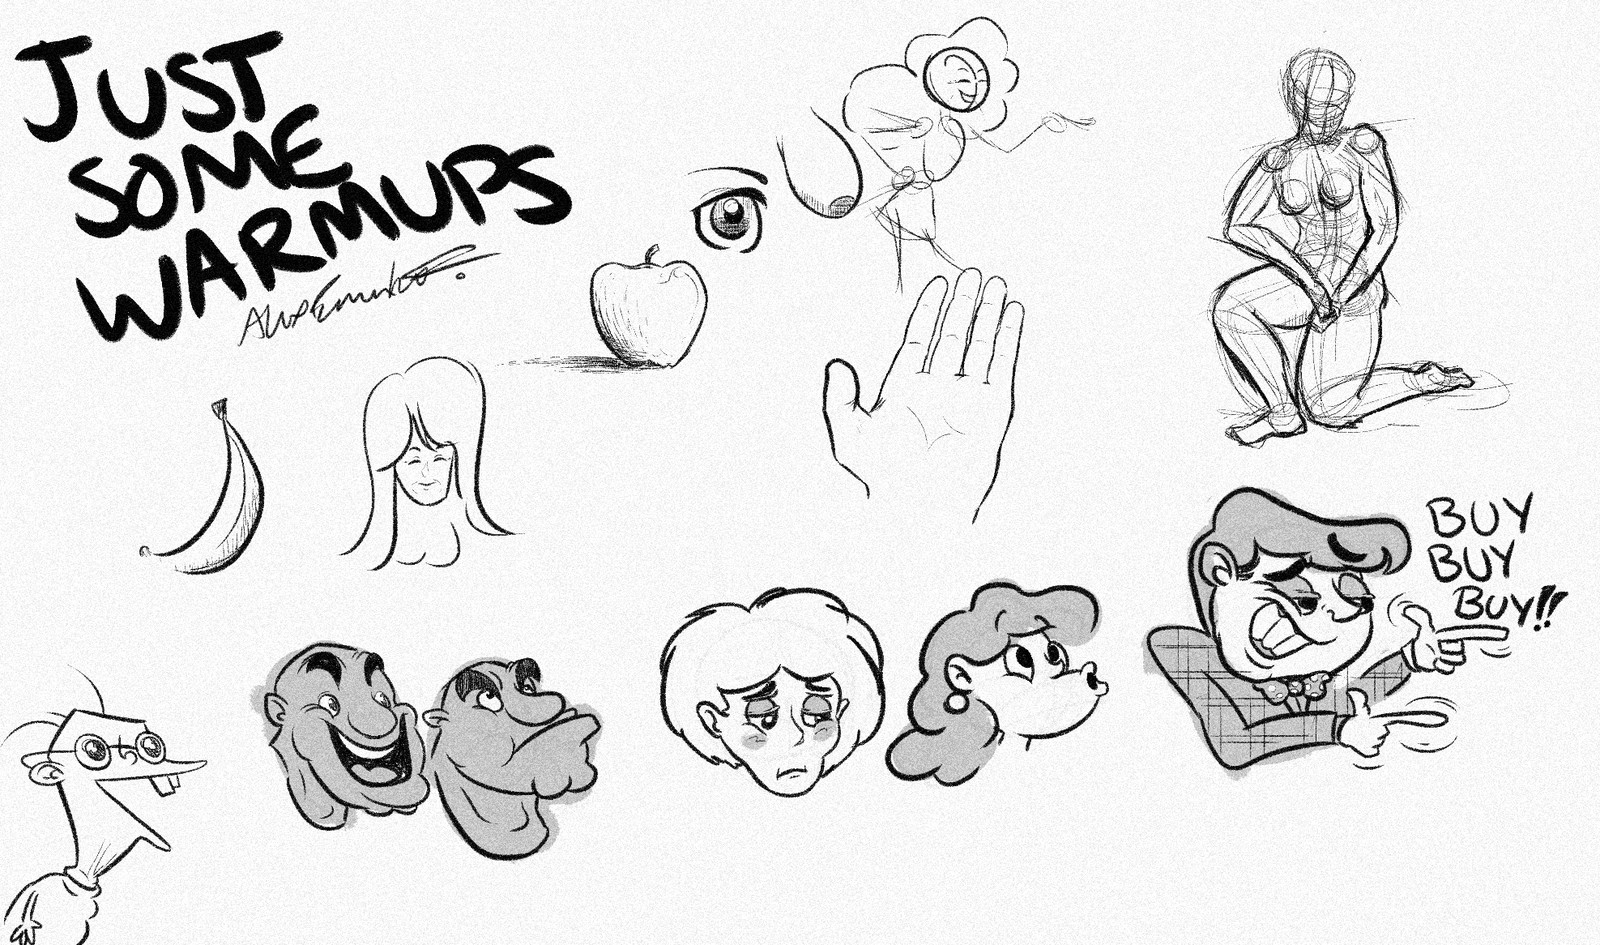 Warm-up sketches.